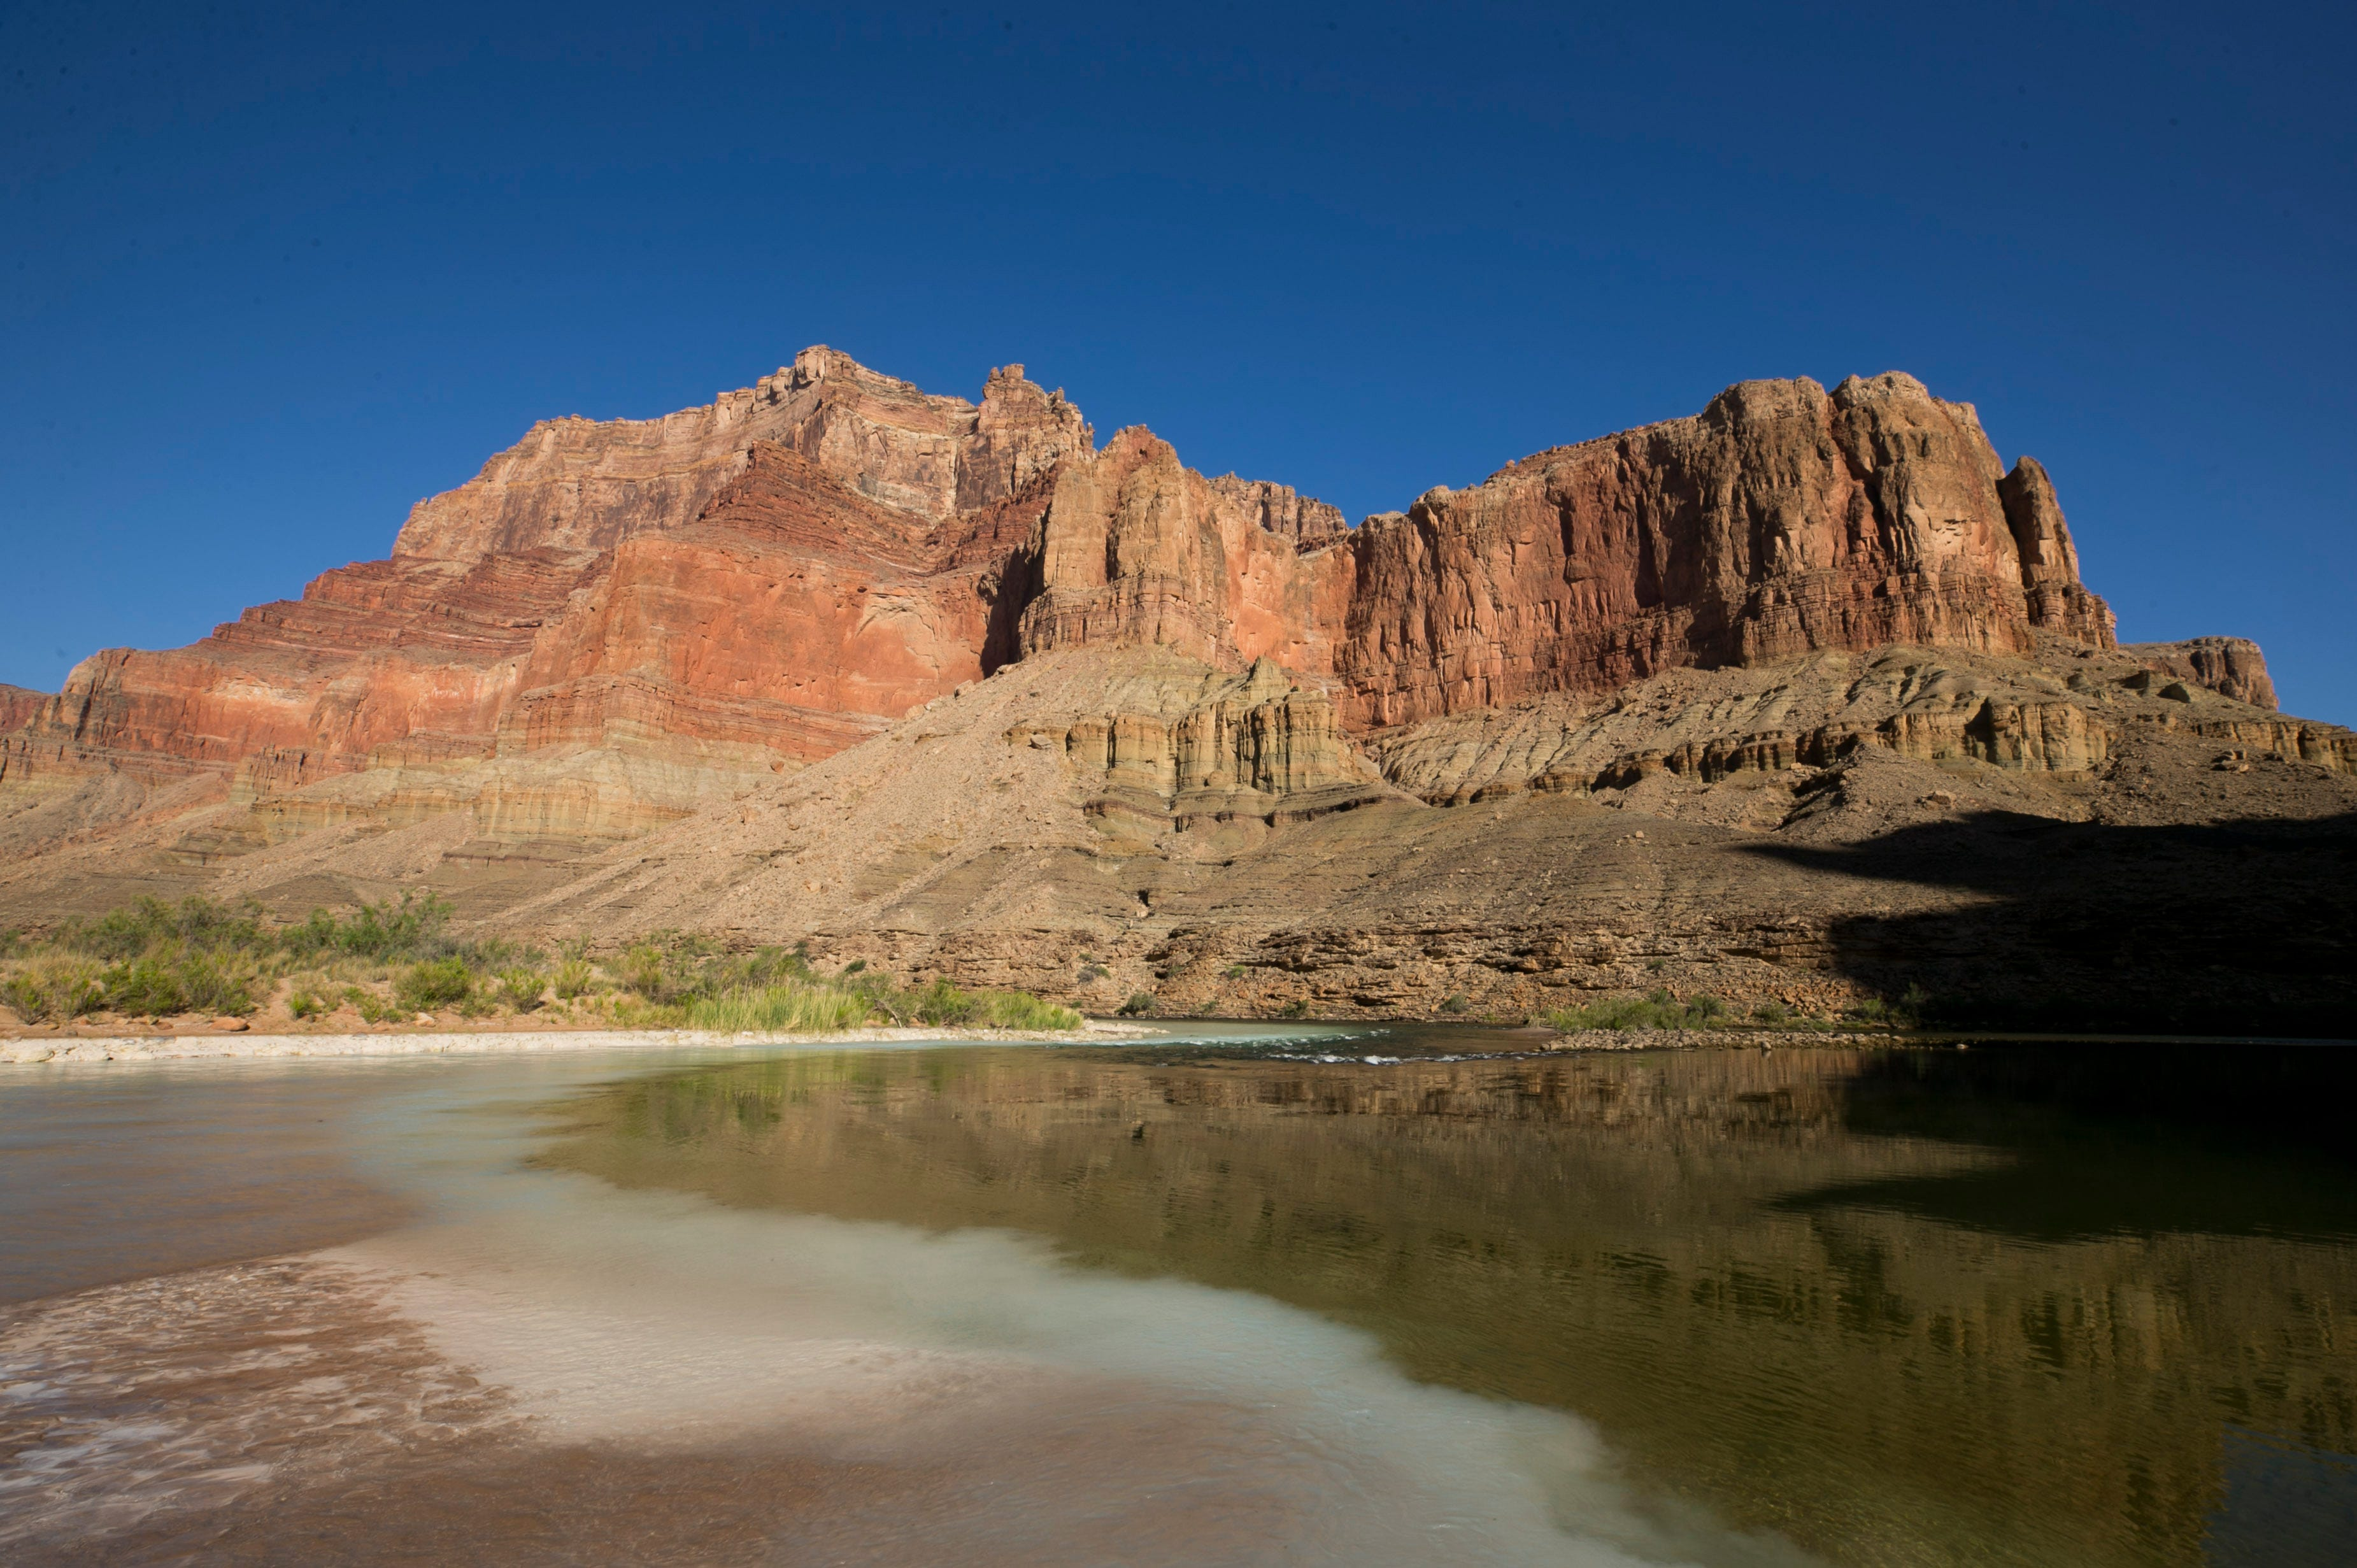 Aqua-blue, calcium carbonate-rich water from the Little Colorado River (left) mixes with water from the Colorado River in Grand Canyon National Park.